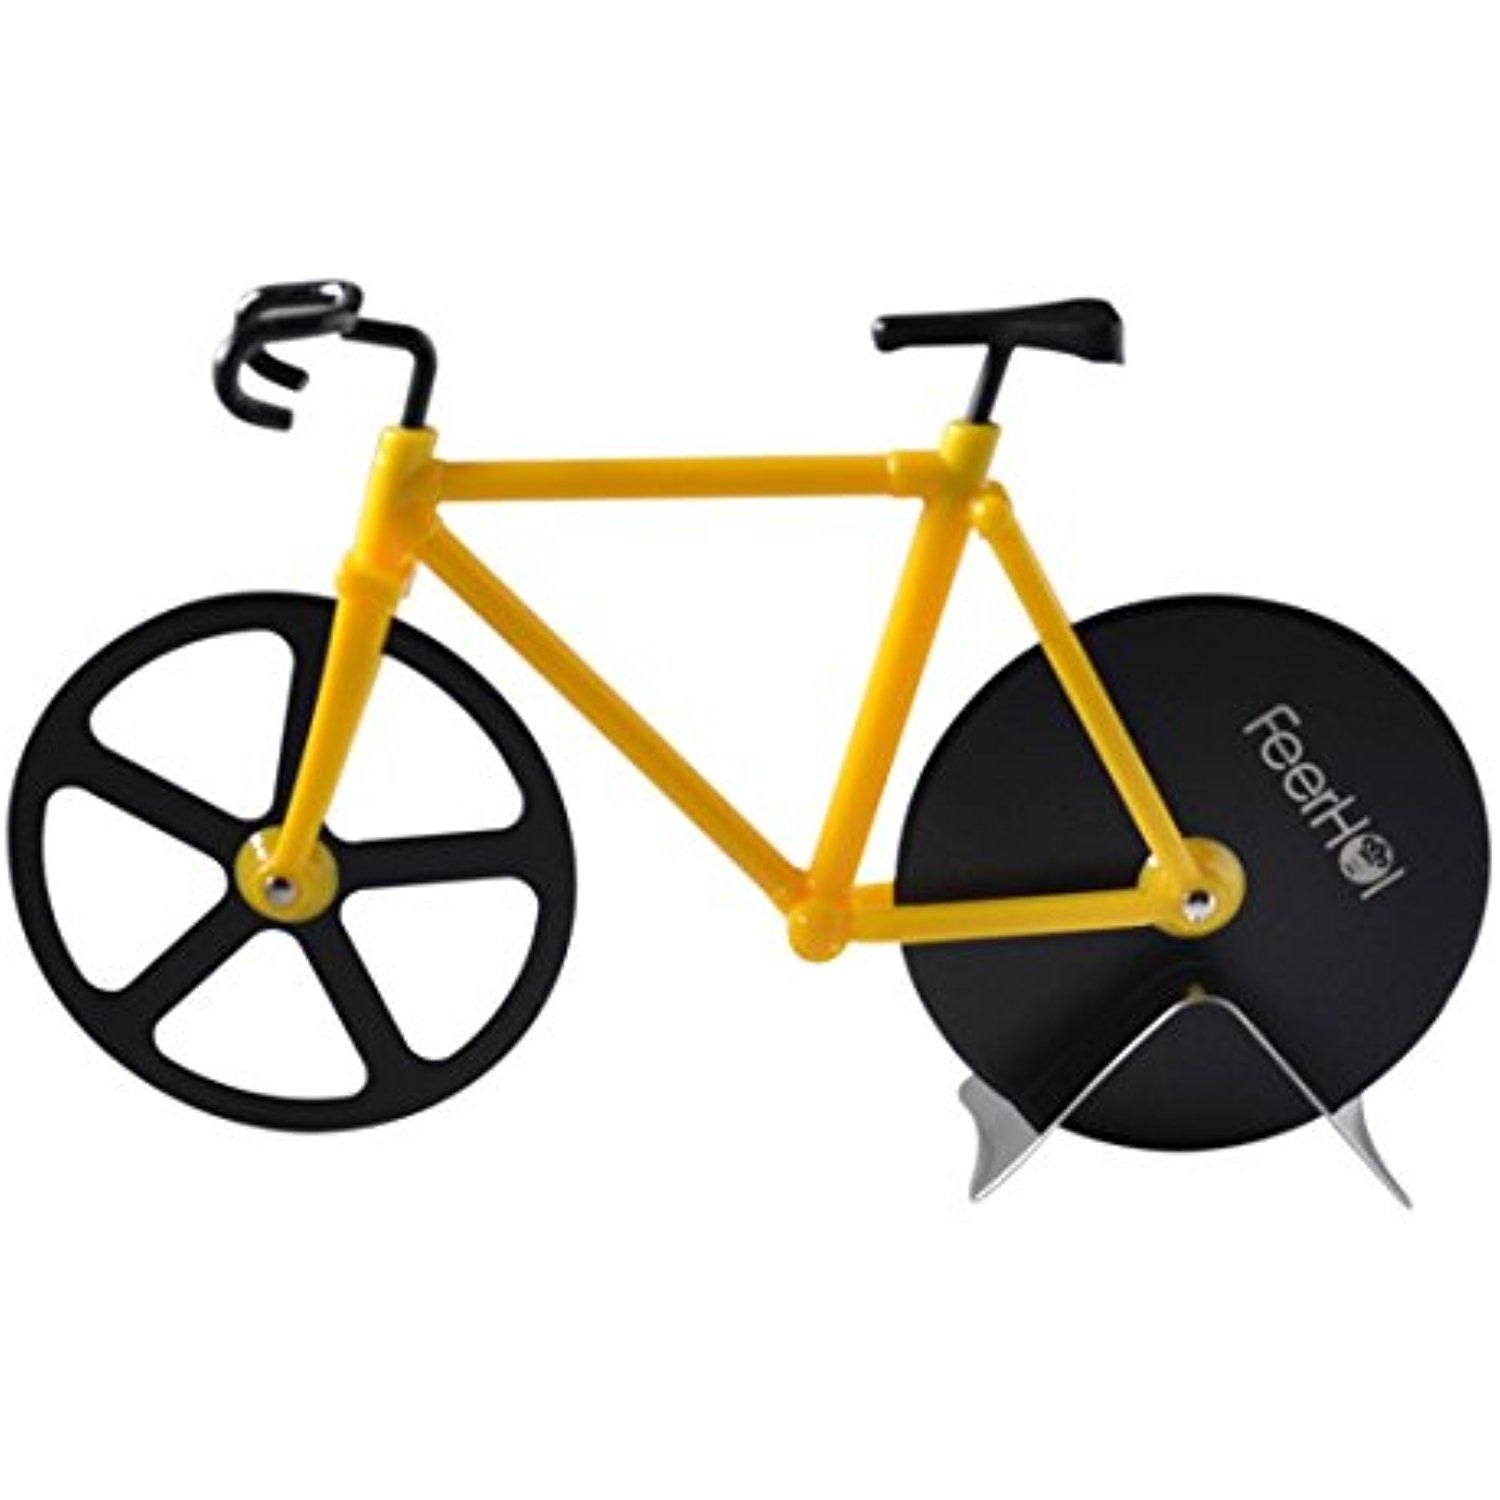 Feerhola S Stainless Steel Pizza Cutter Bike The Fun Small